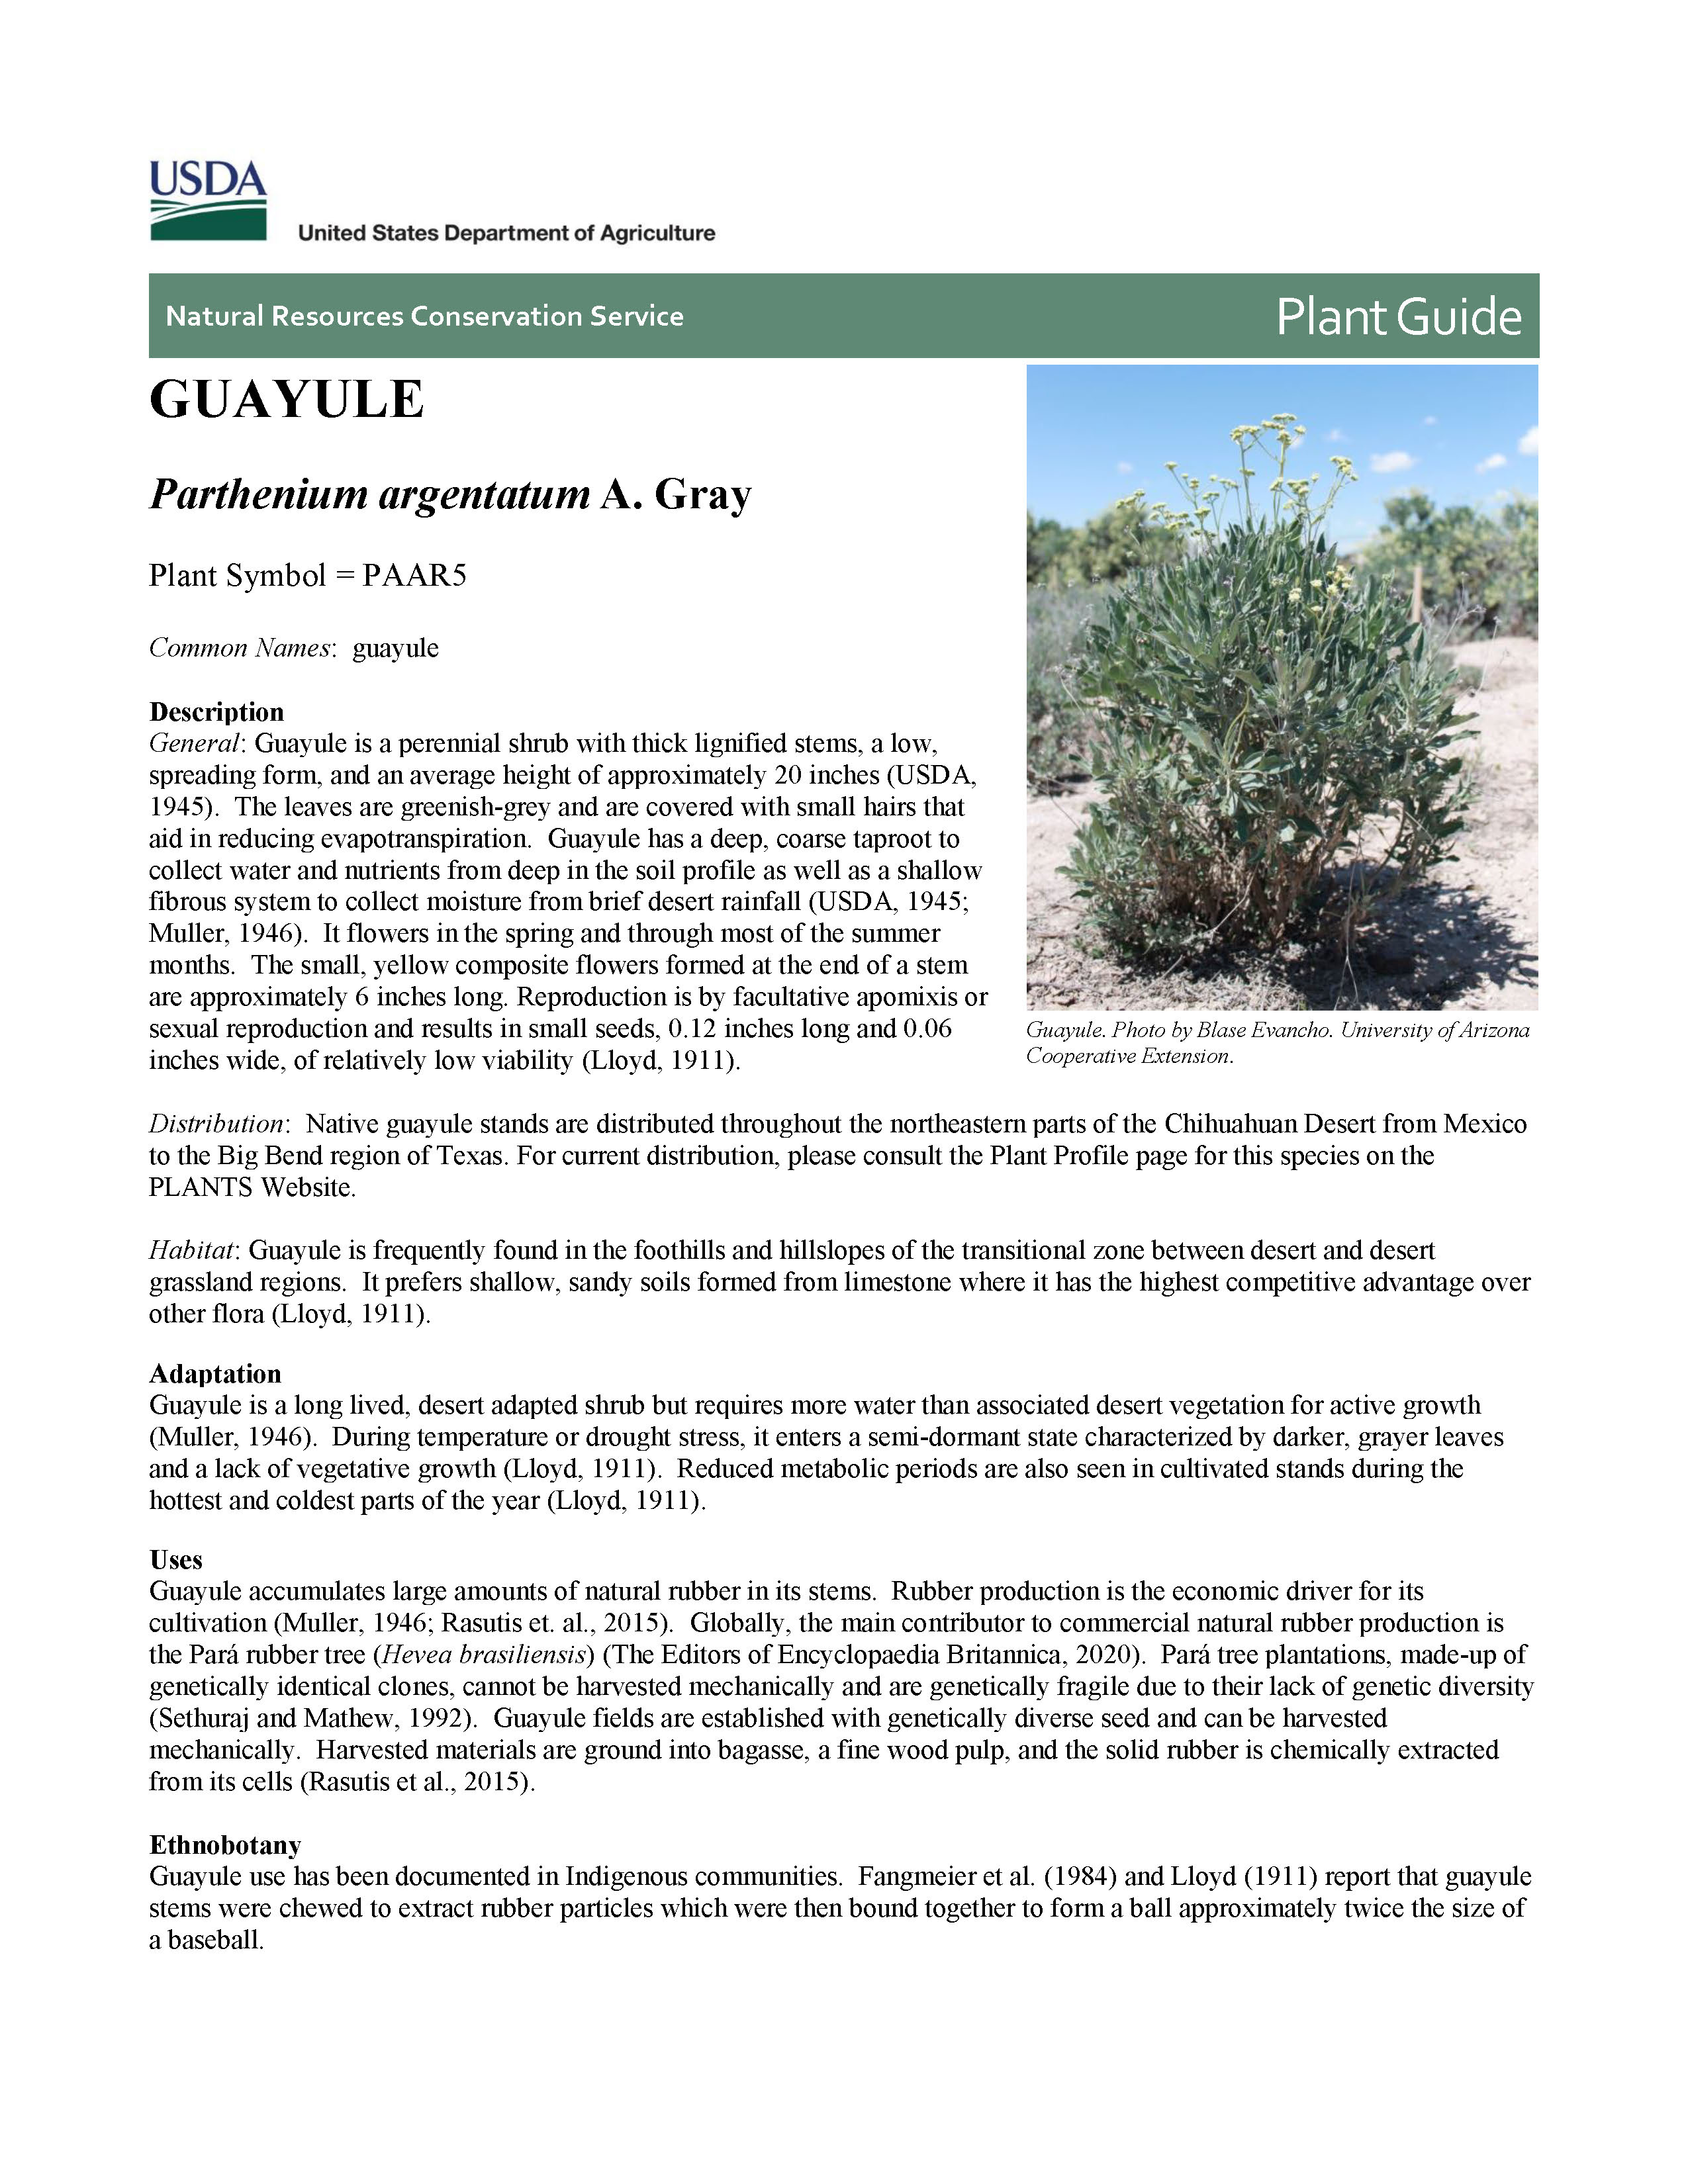 Guayule USDA Plant Guide cover page